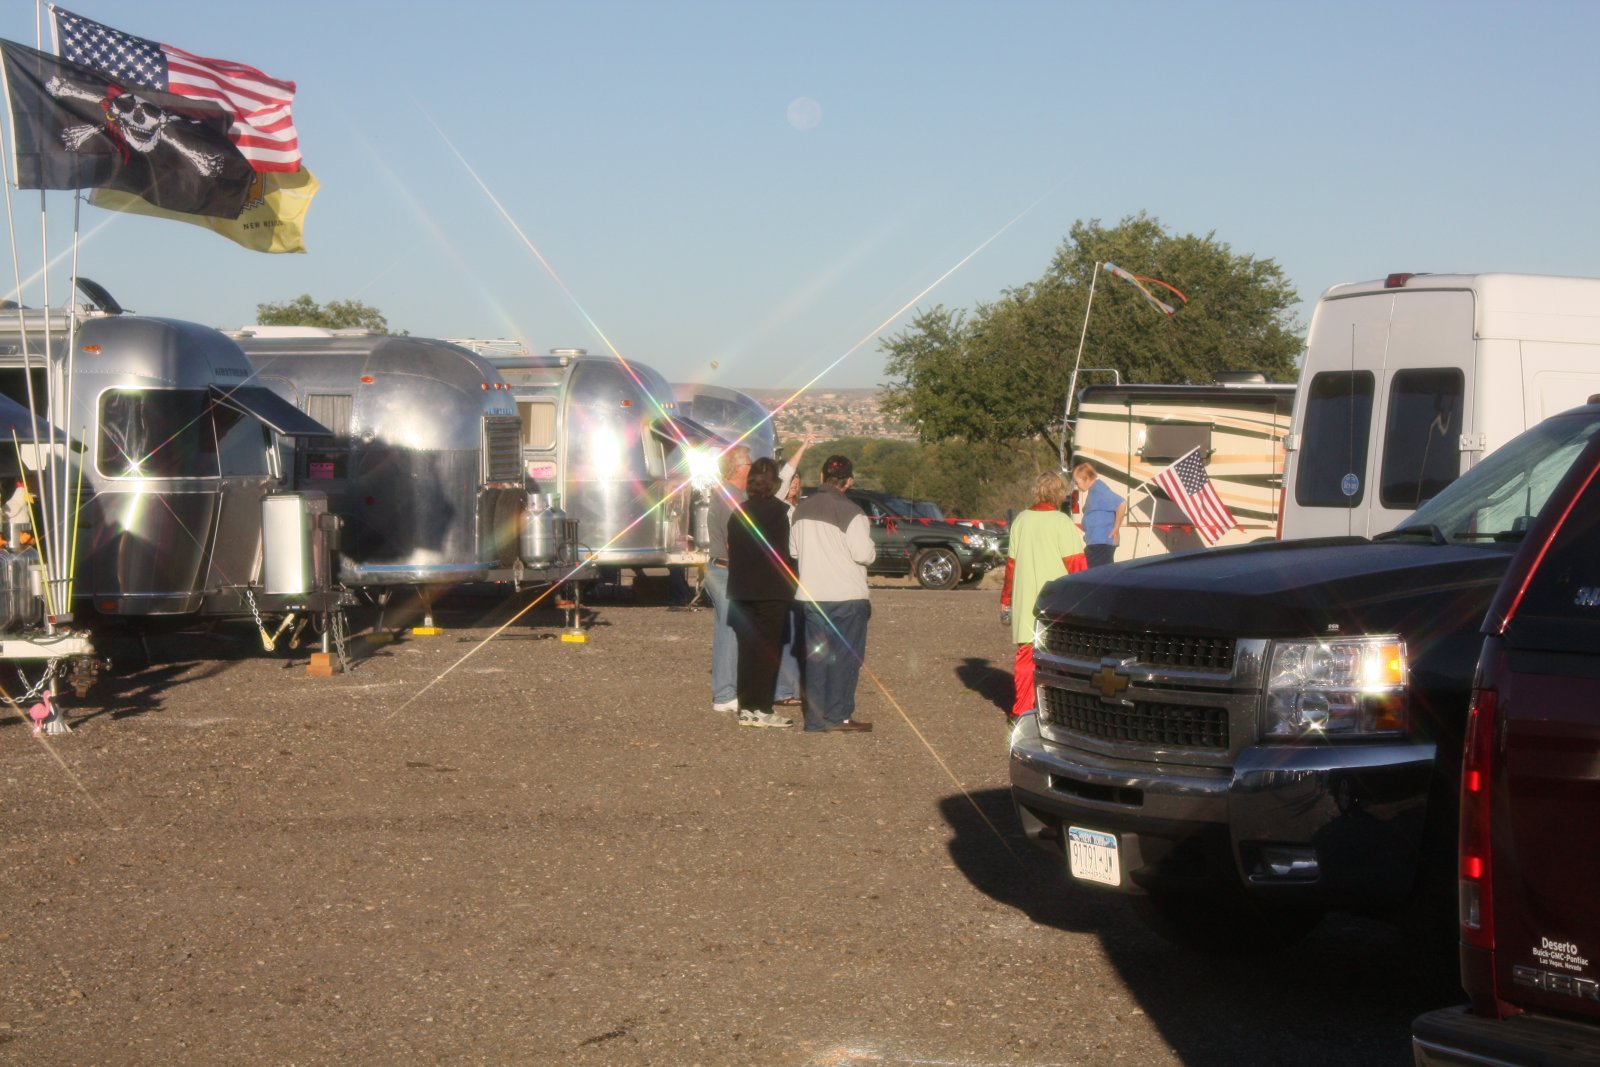 Click image for larger version  Name:Balloon Fiesta 09 107.jpg Views:72 Size:263.4 KB ID:140768